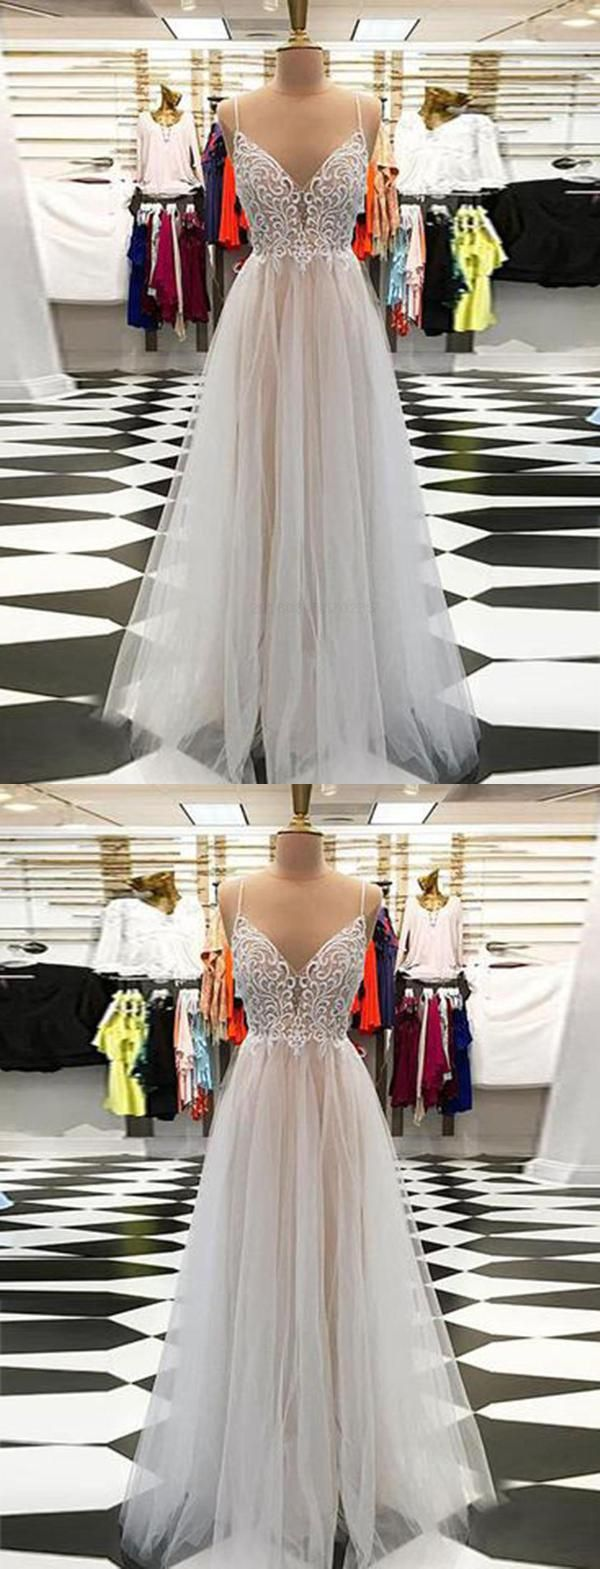 Admirable open back vneck in wedding ideas pinterest